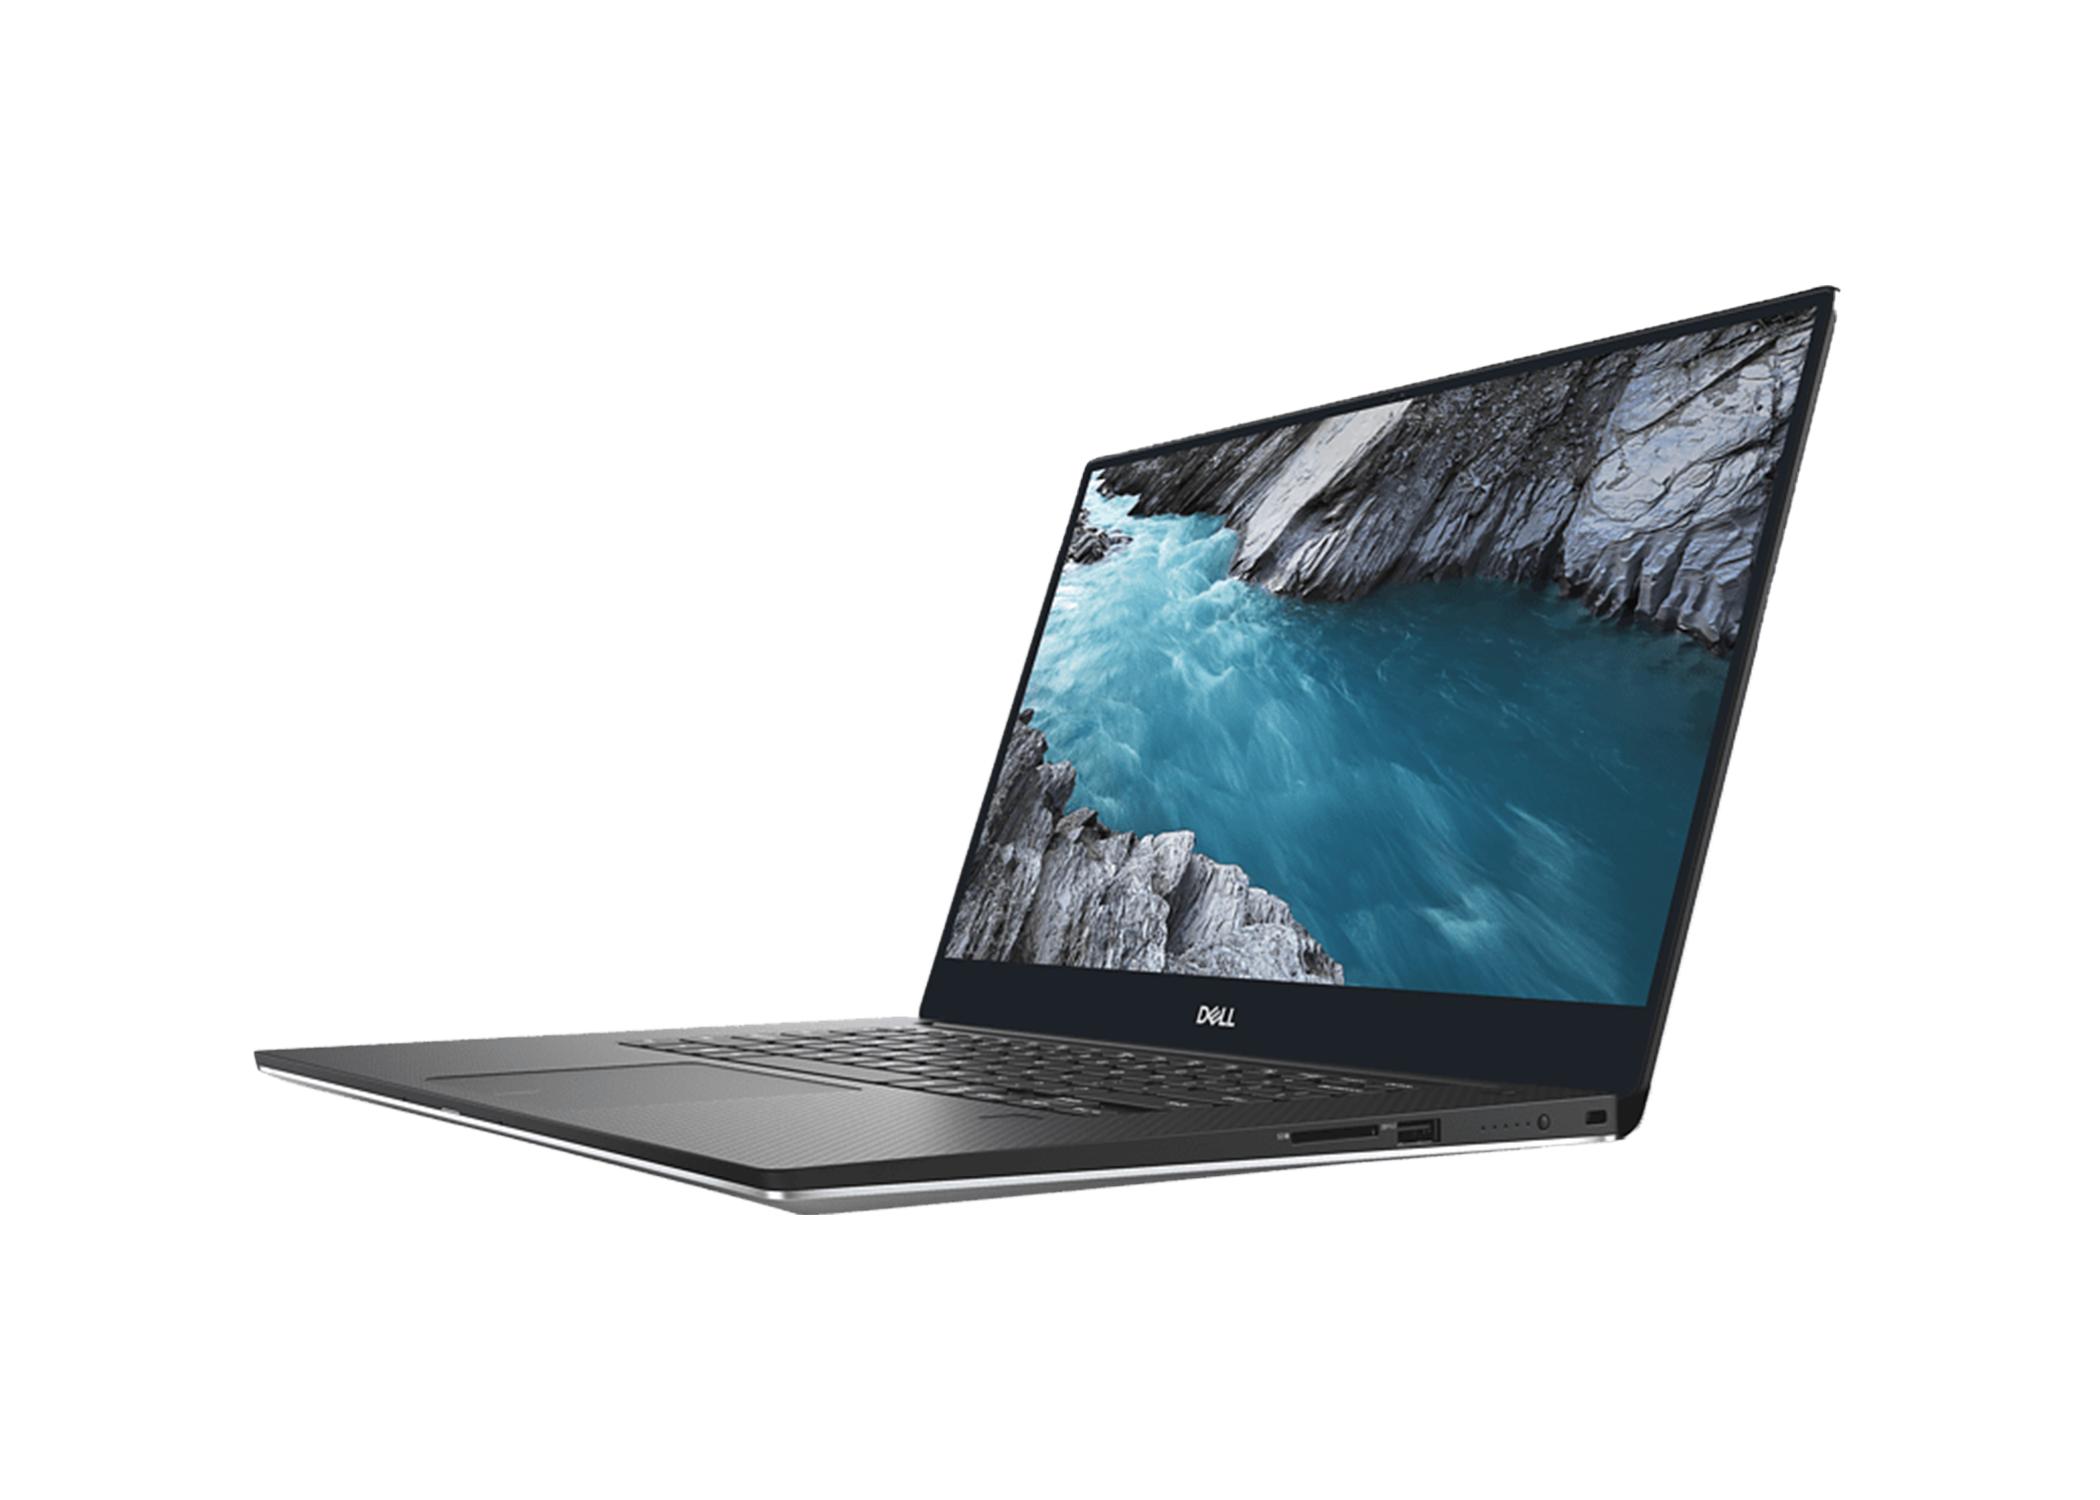 dell xps 7590 3